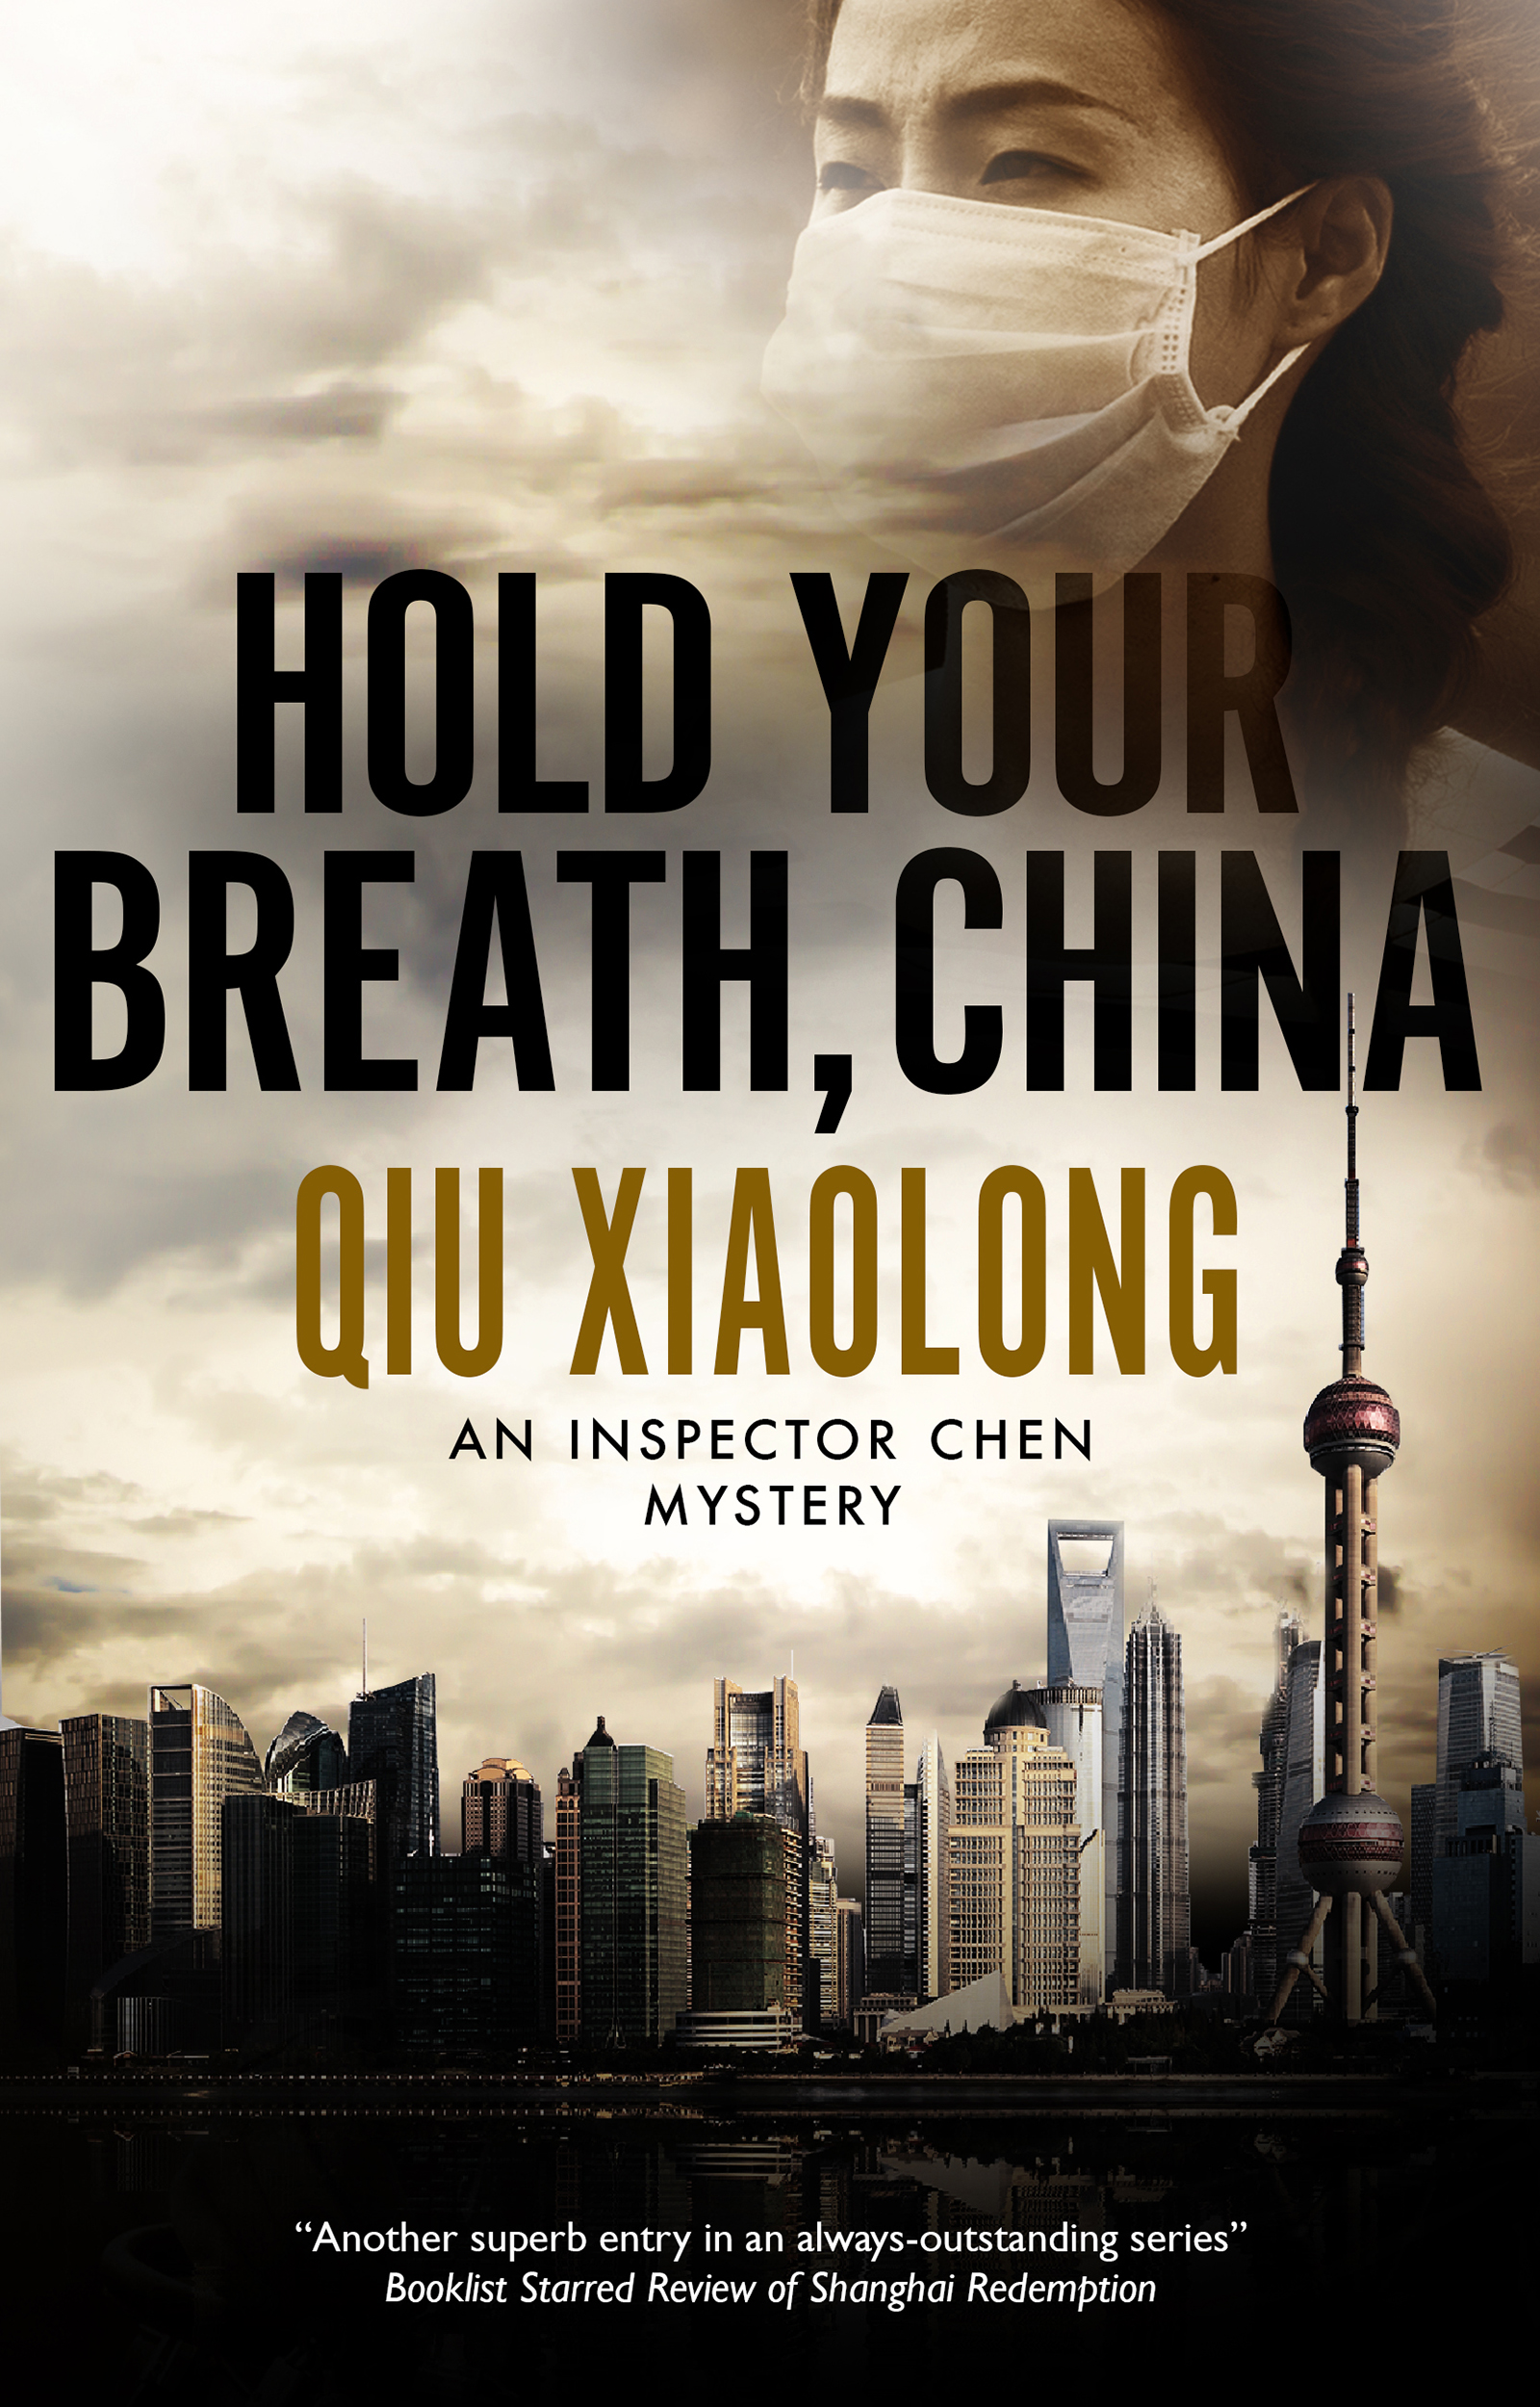 Murder, Smog, and Communist Intrigue in <i>Hold Your Breath, China</i>